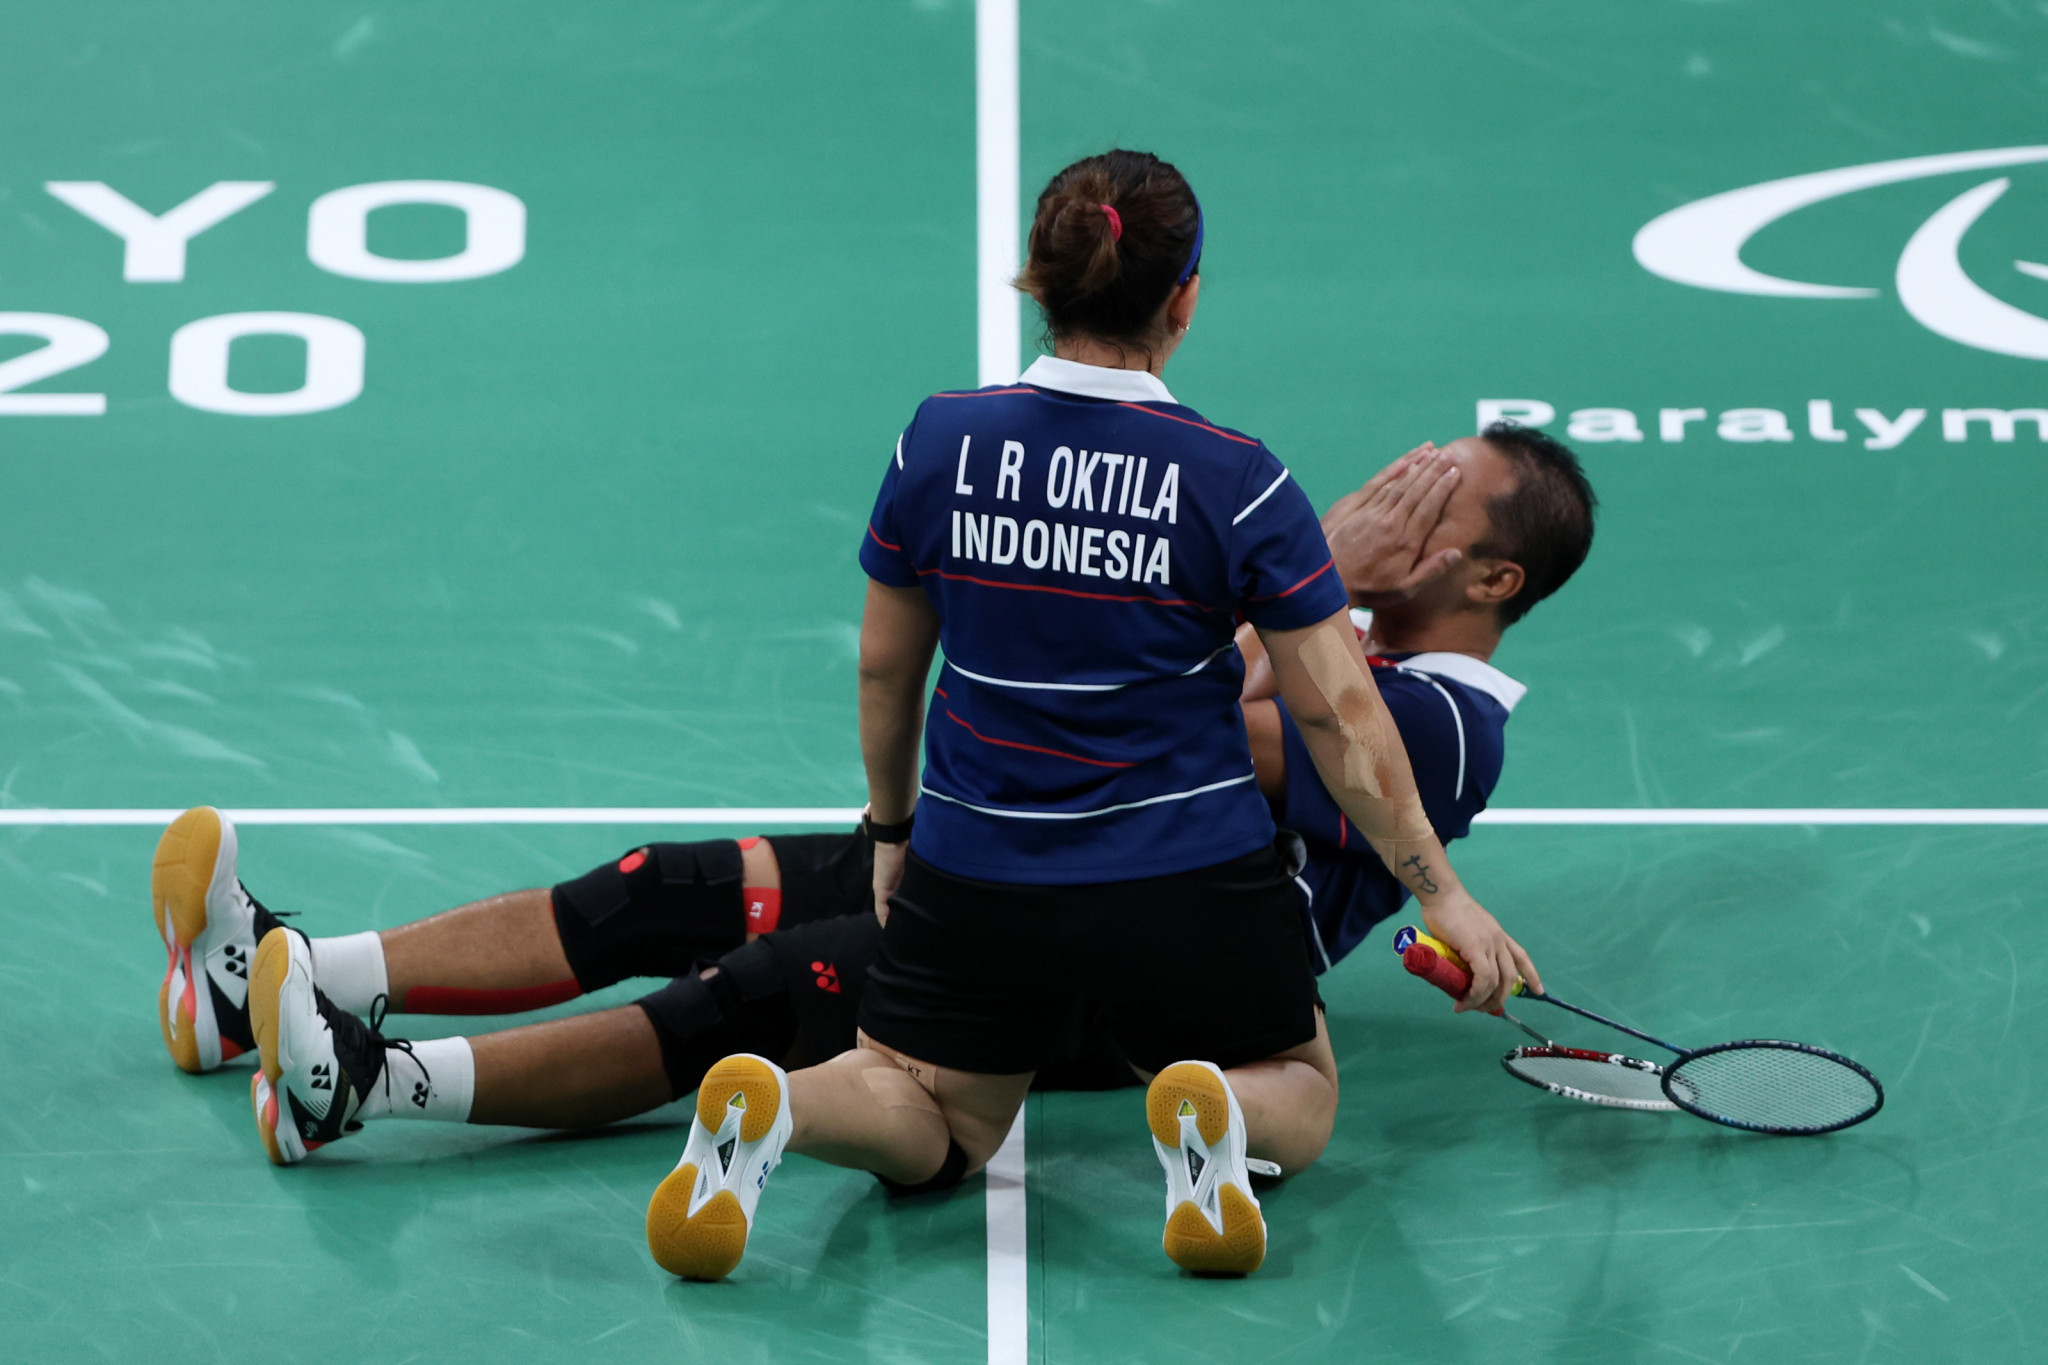 Indonesia badminton mixed doubles win final Paralympic Games gold medal of Tokyo 2020